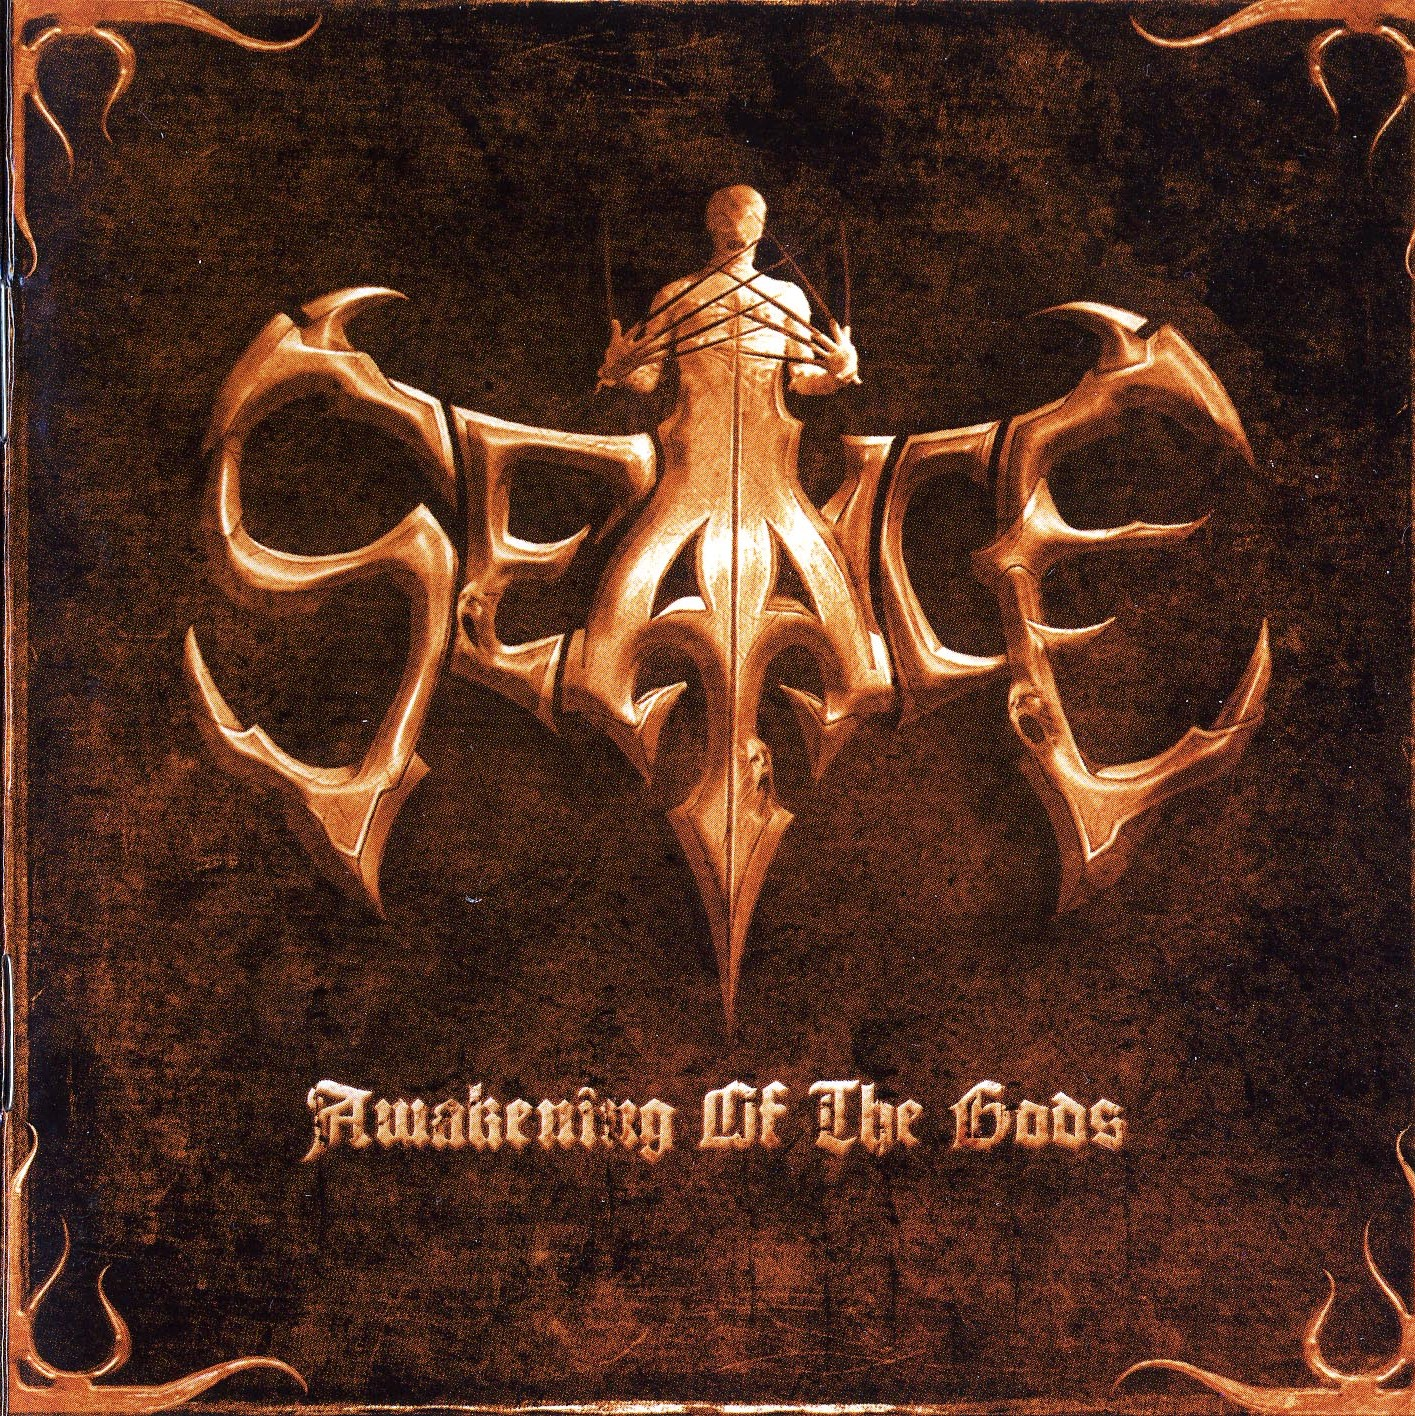 Seance - Awakening Of The Gods - 2009